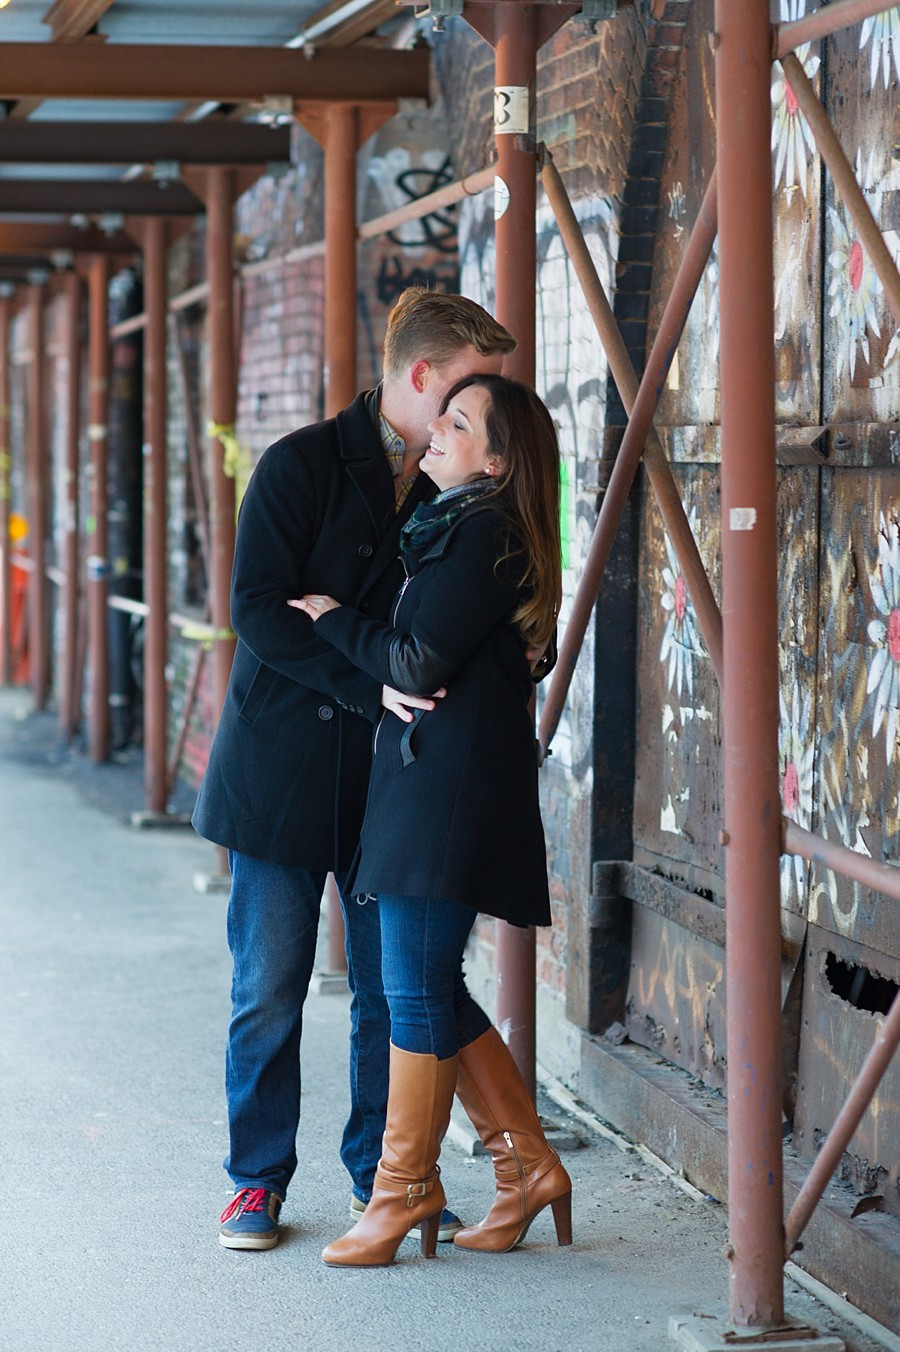 Brooklyn_Engagement_Session_RJ_17.jpg